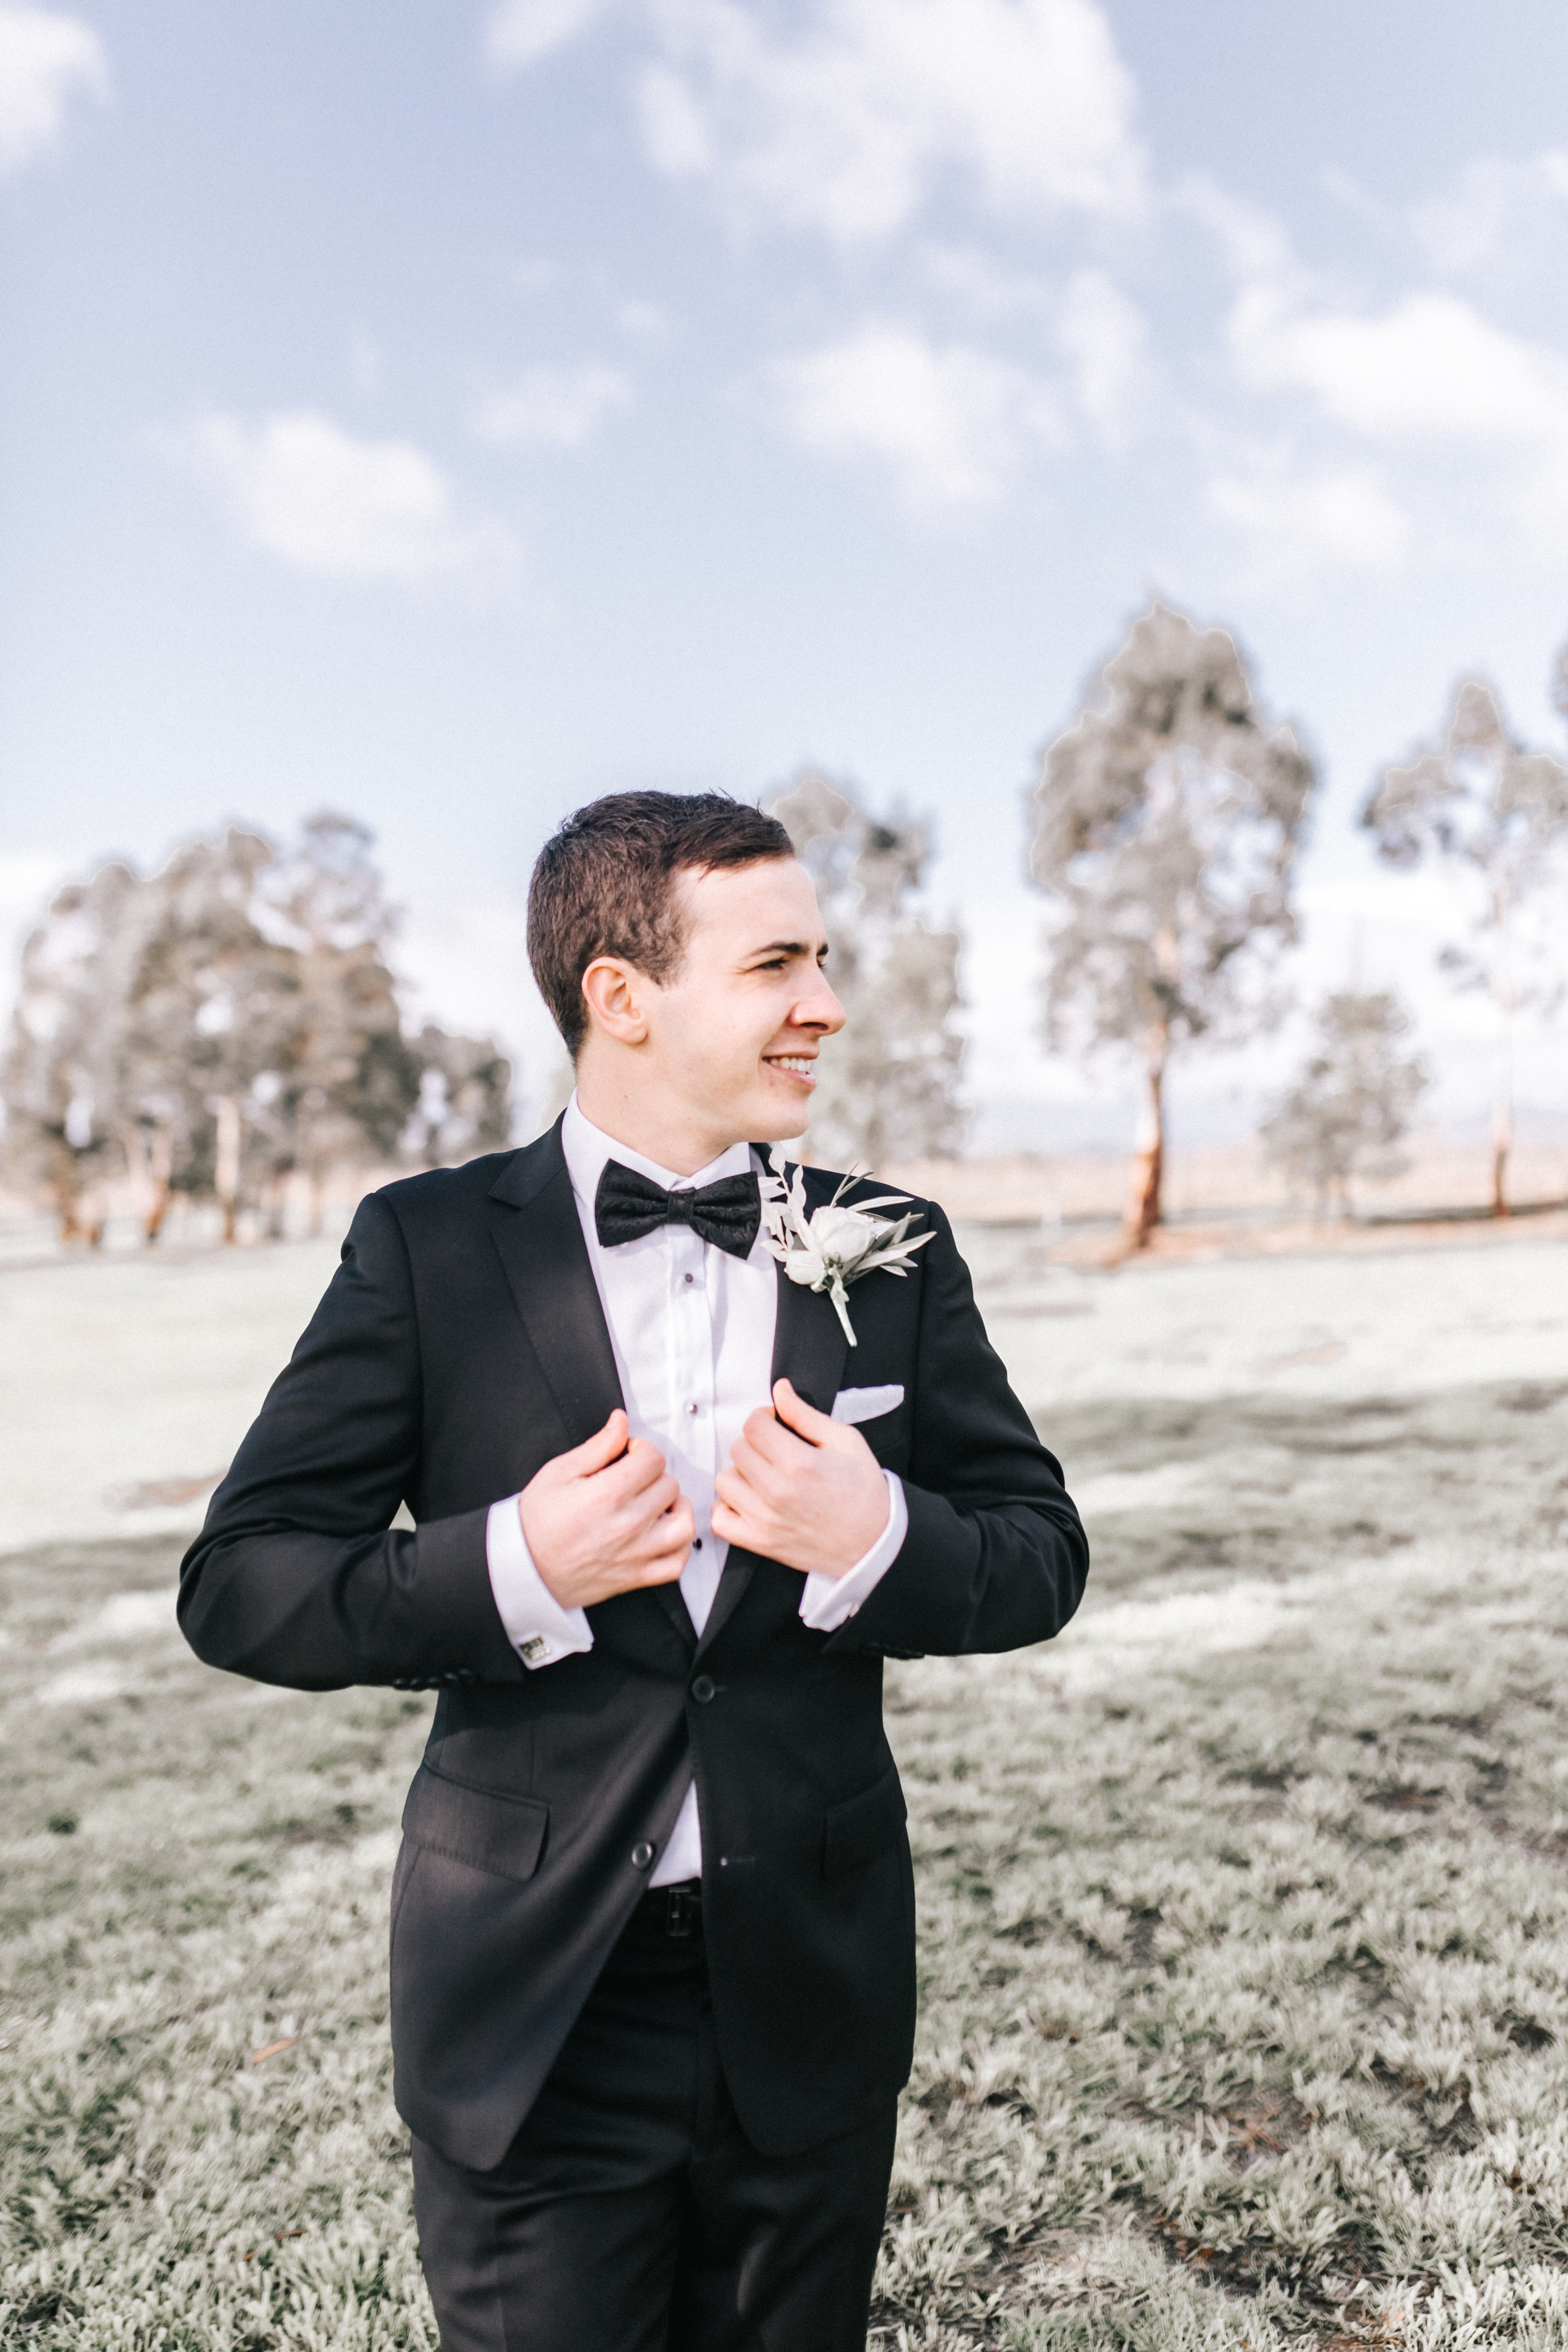 Groom Pre Ceremony Photograph on Golf Course